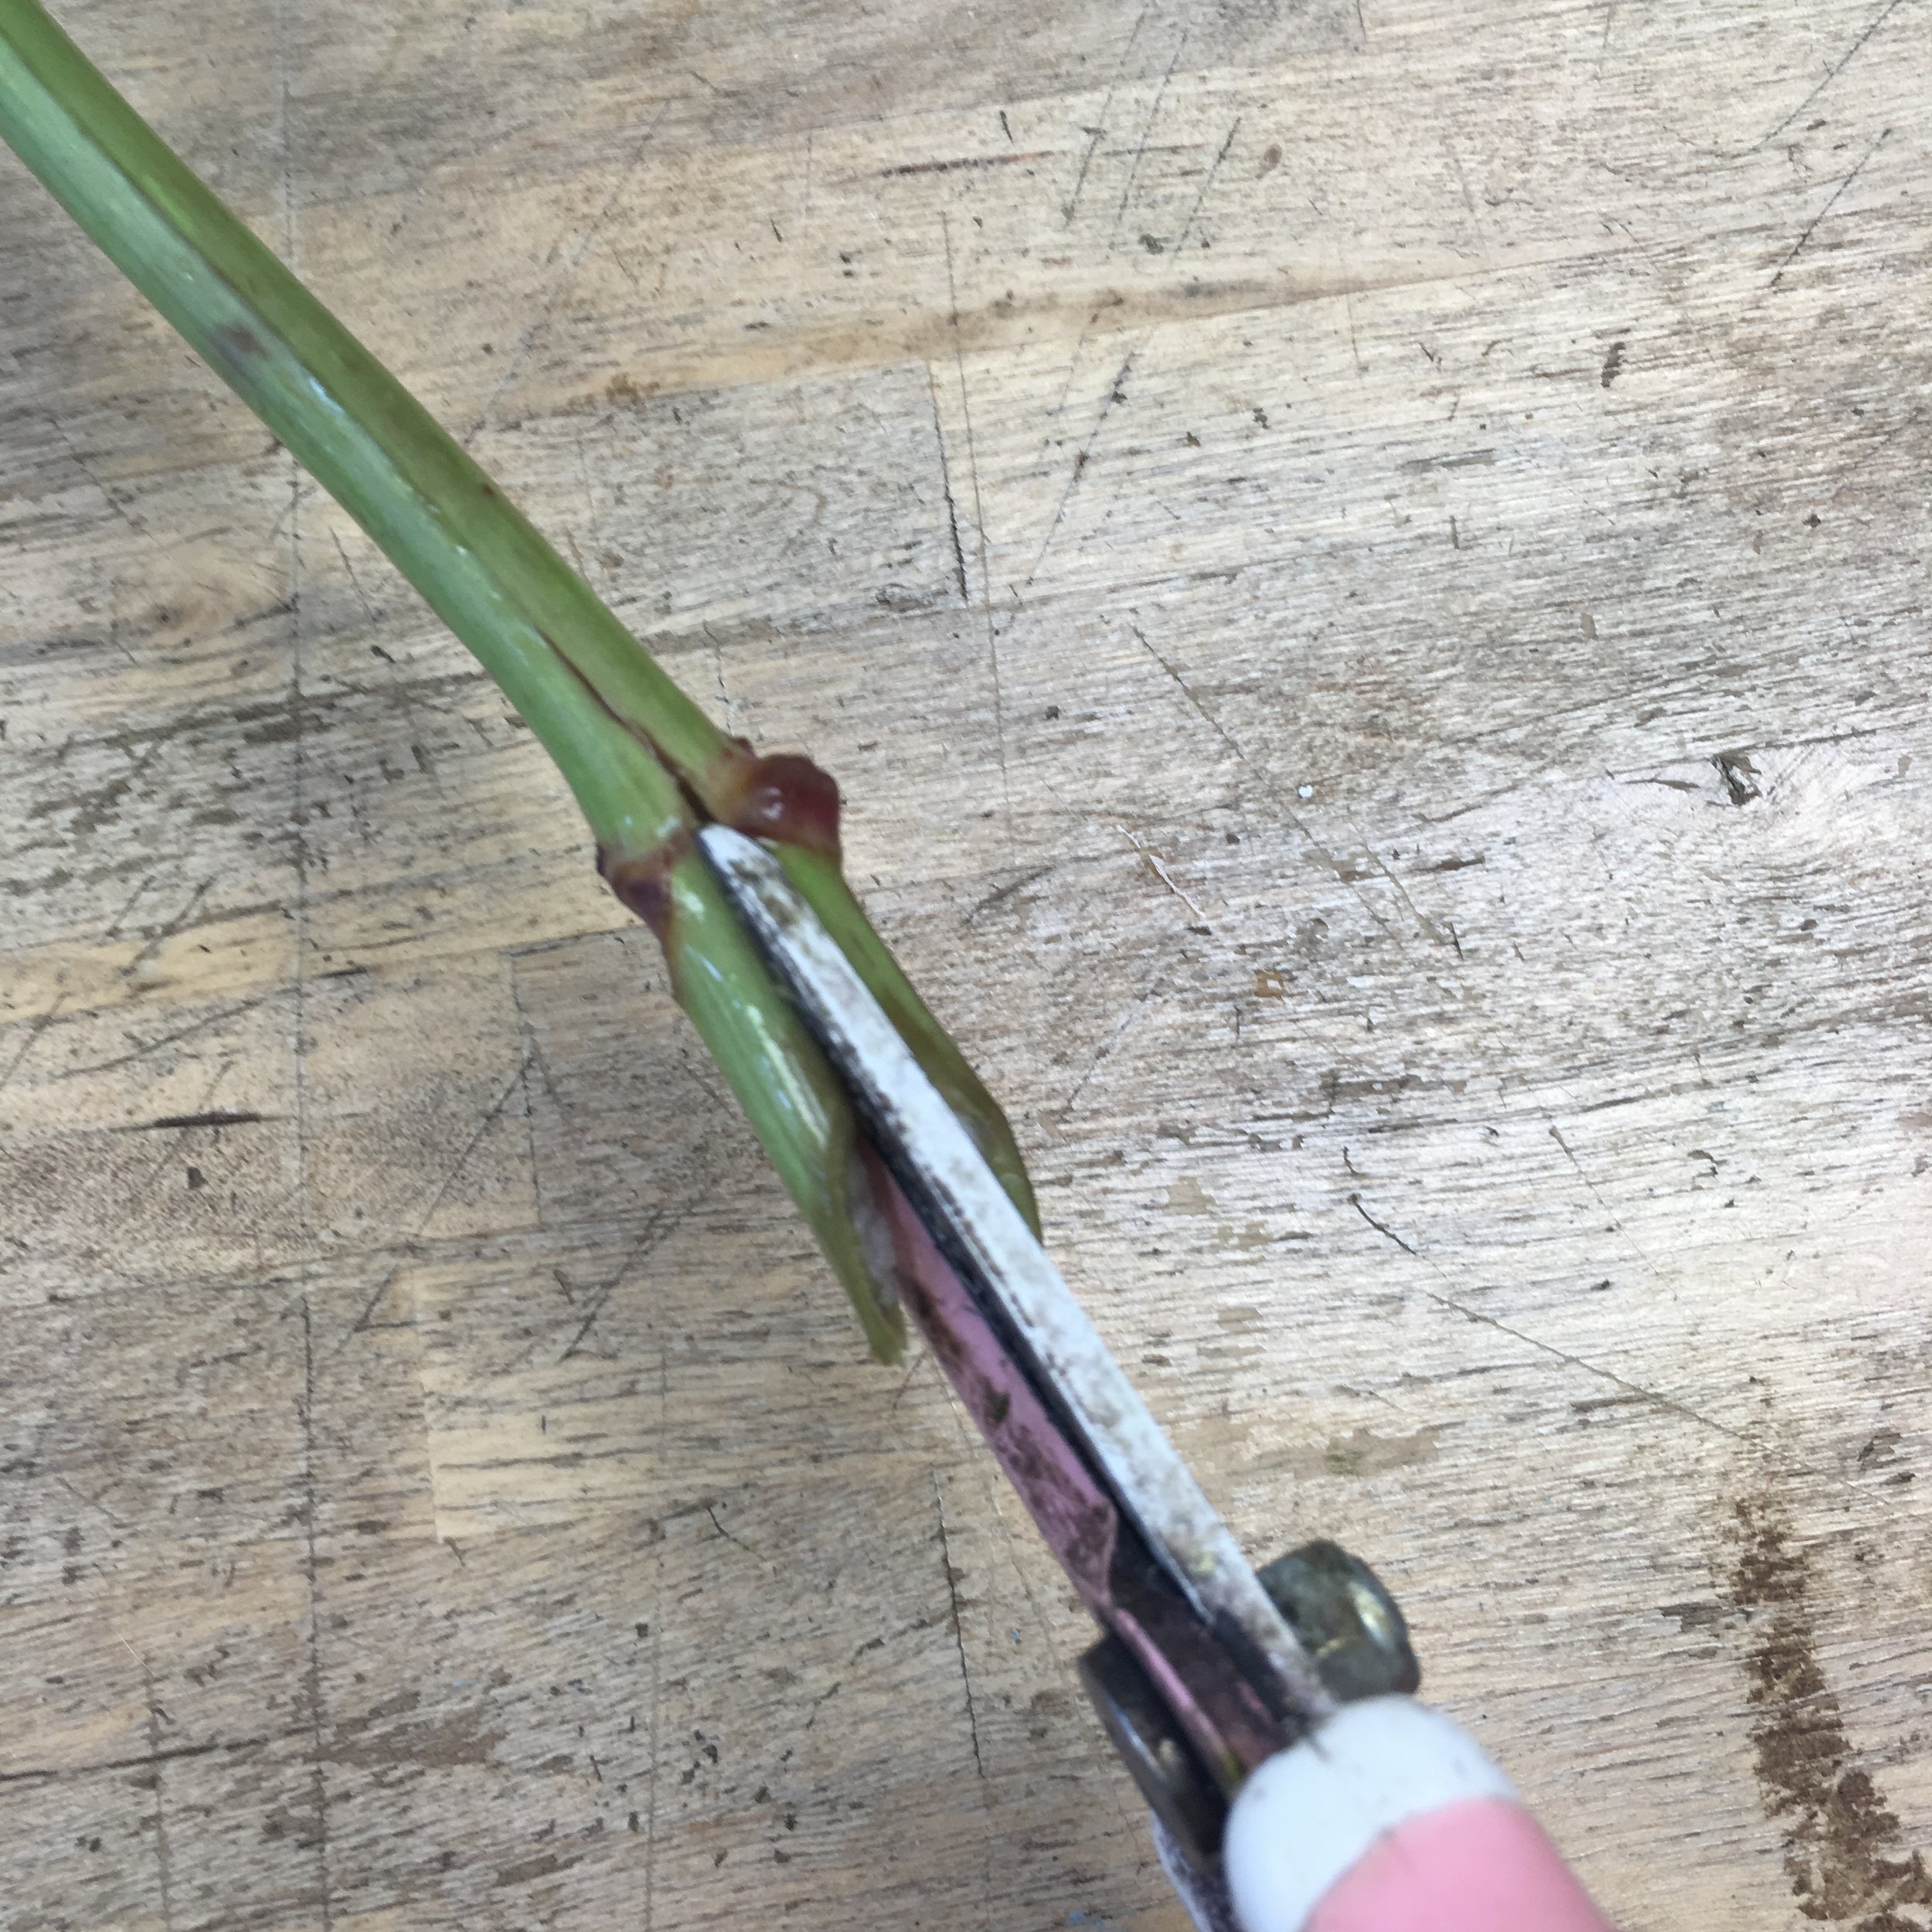 Cutting up the stem as well as across at a 45 degree angle.